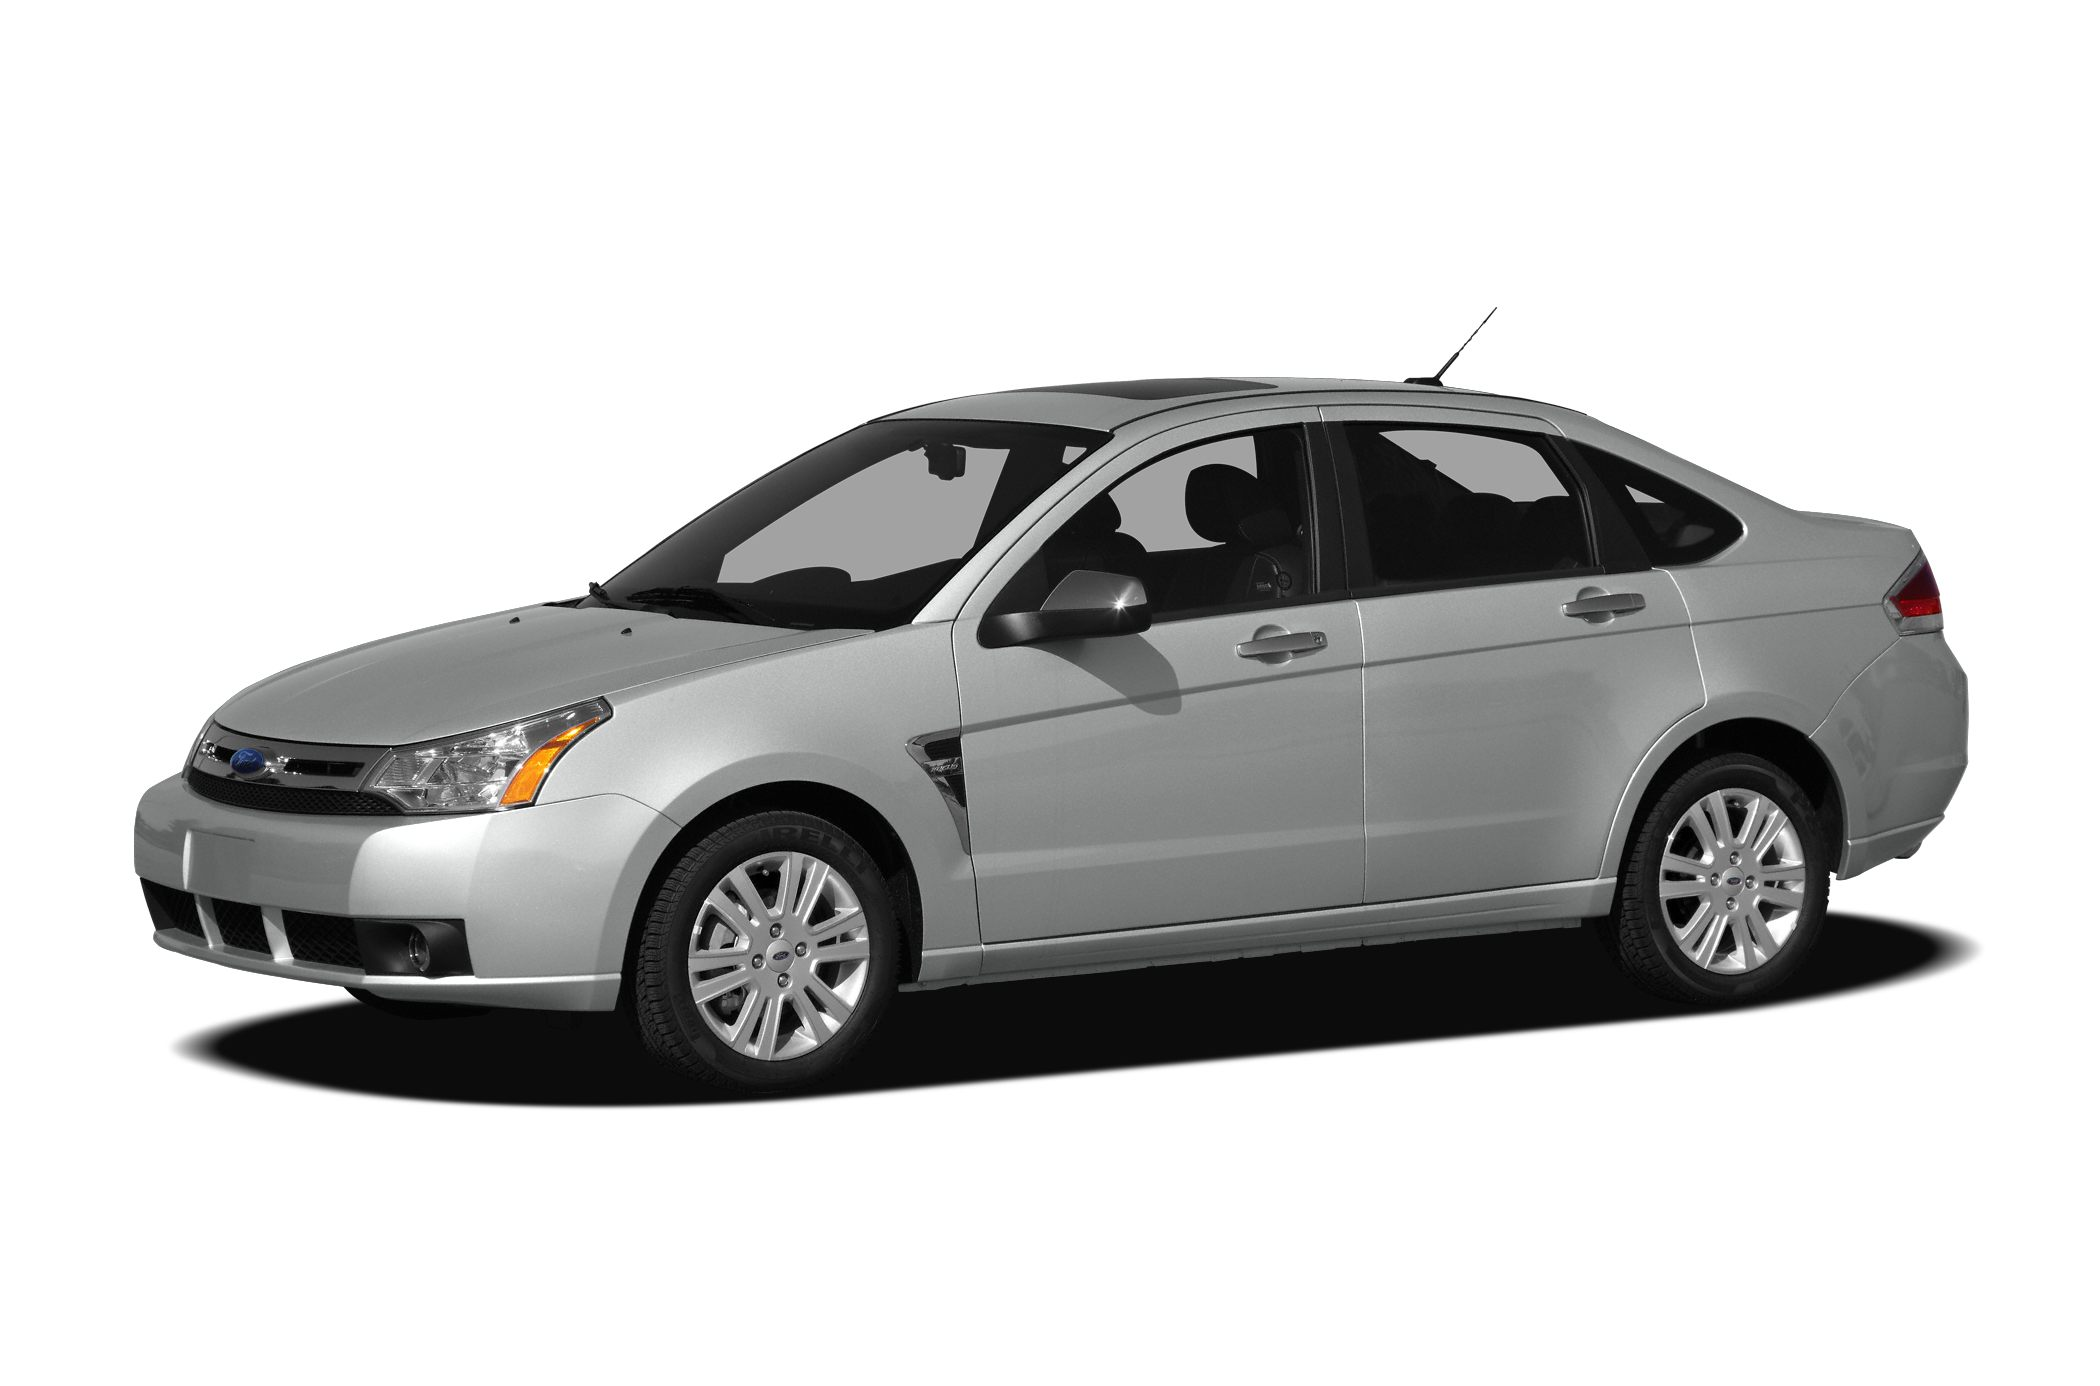 2009 Ford Focus SEL Sedan for sale in Fresno for $10,900 with 136,754 miles